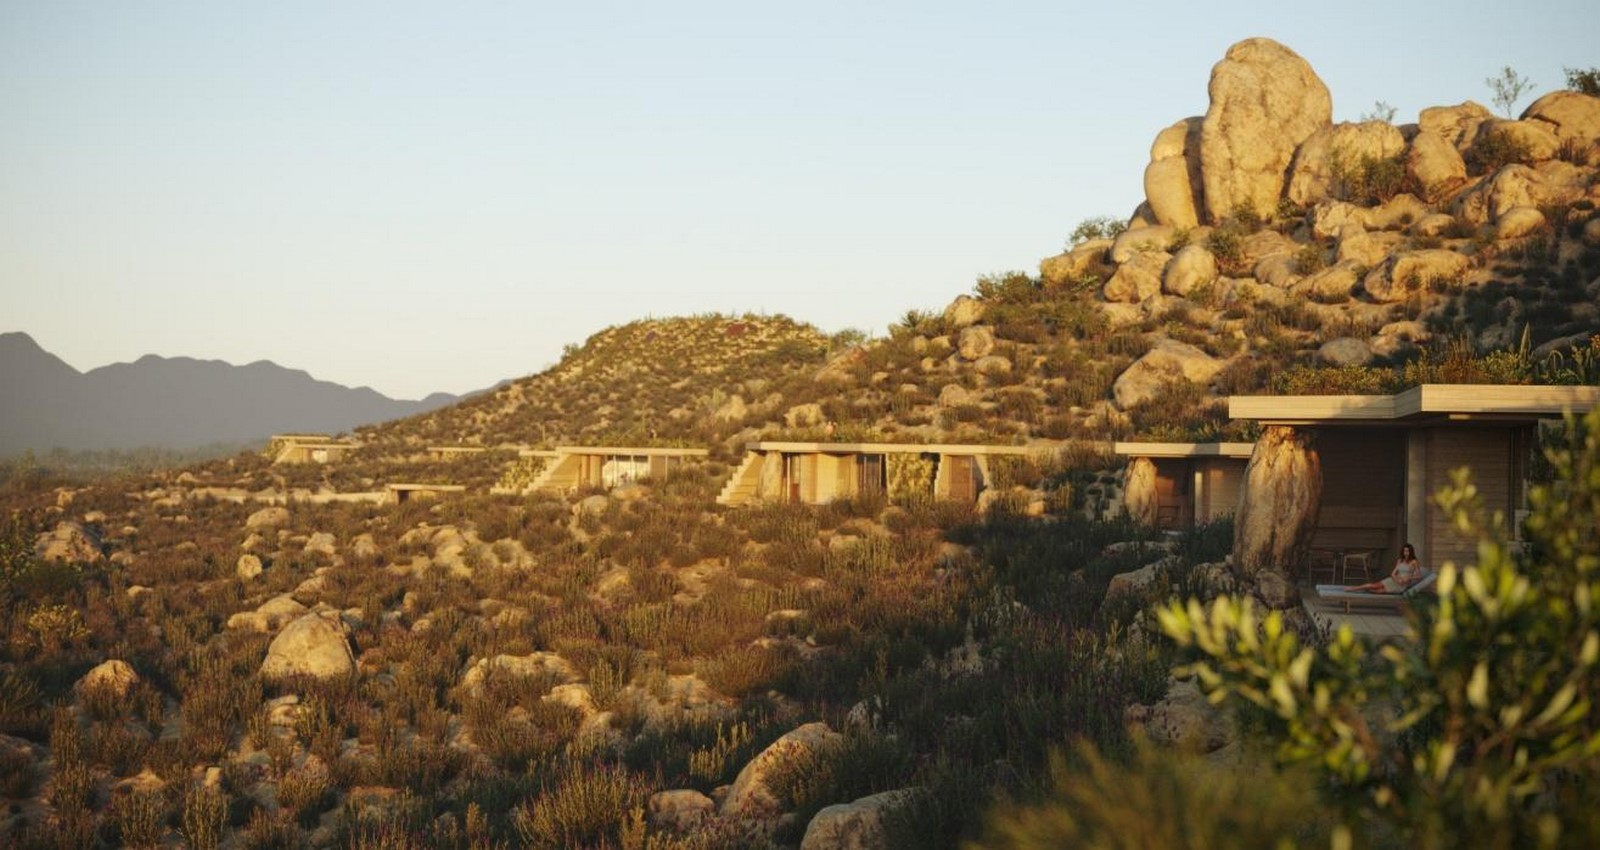 Ummara resort with 28 villas embedded in Mexican hills unveiled by Rojkind Arquitectos - Sheet3